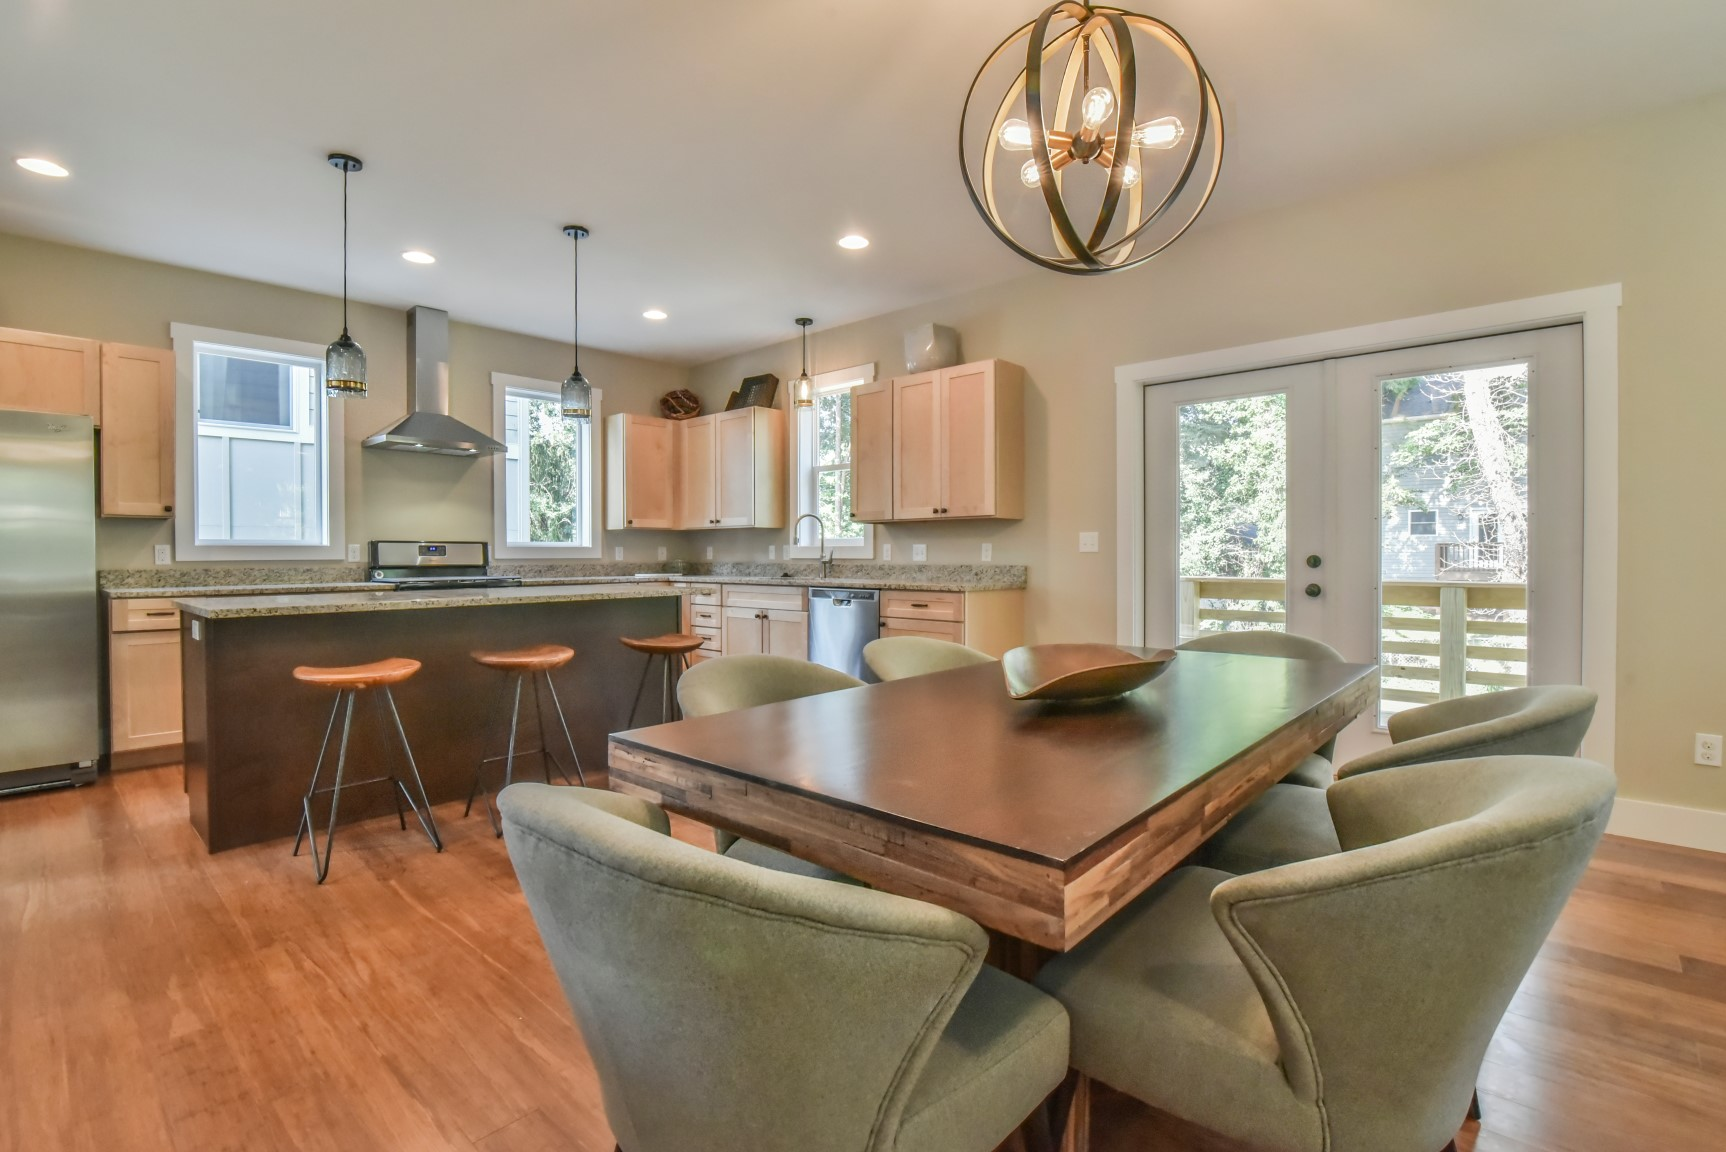 Kitchen/dining room opens to back spacious porch and private enclosure